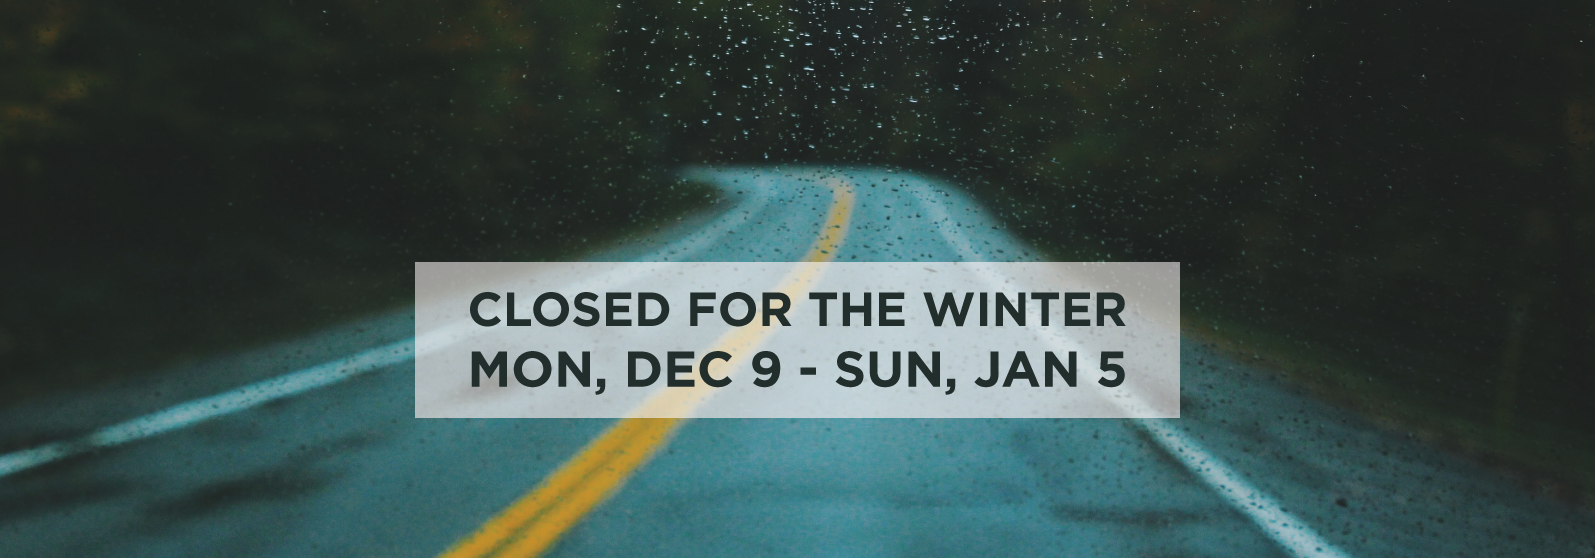 bk-homepage-rotating-images-winter-closure